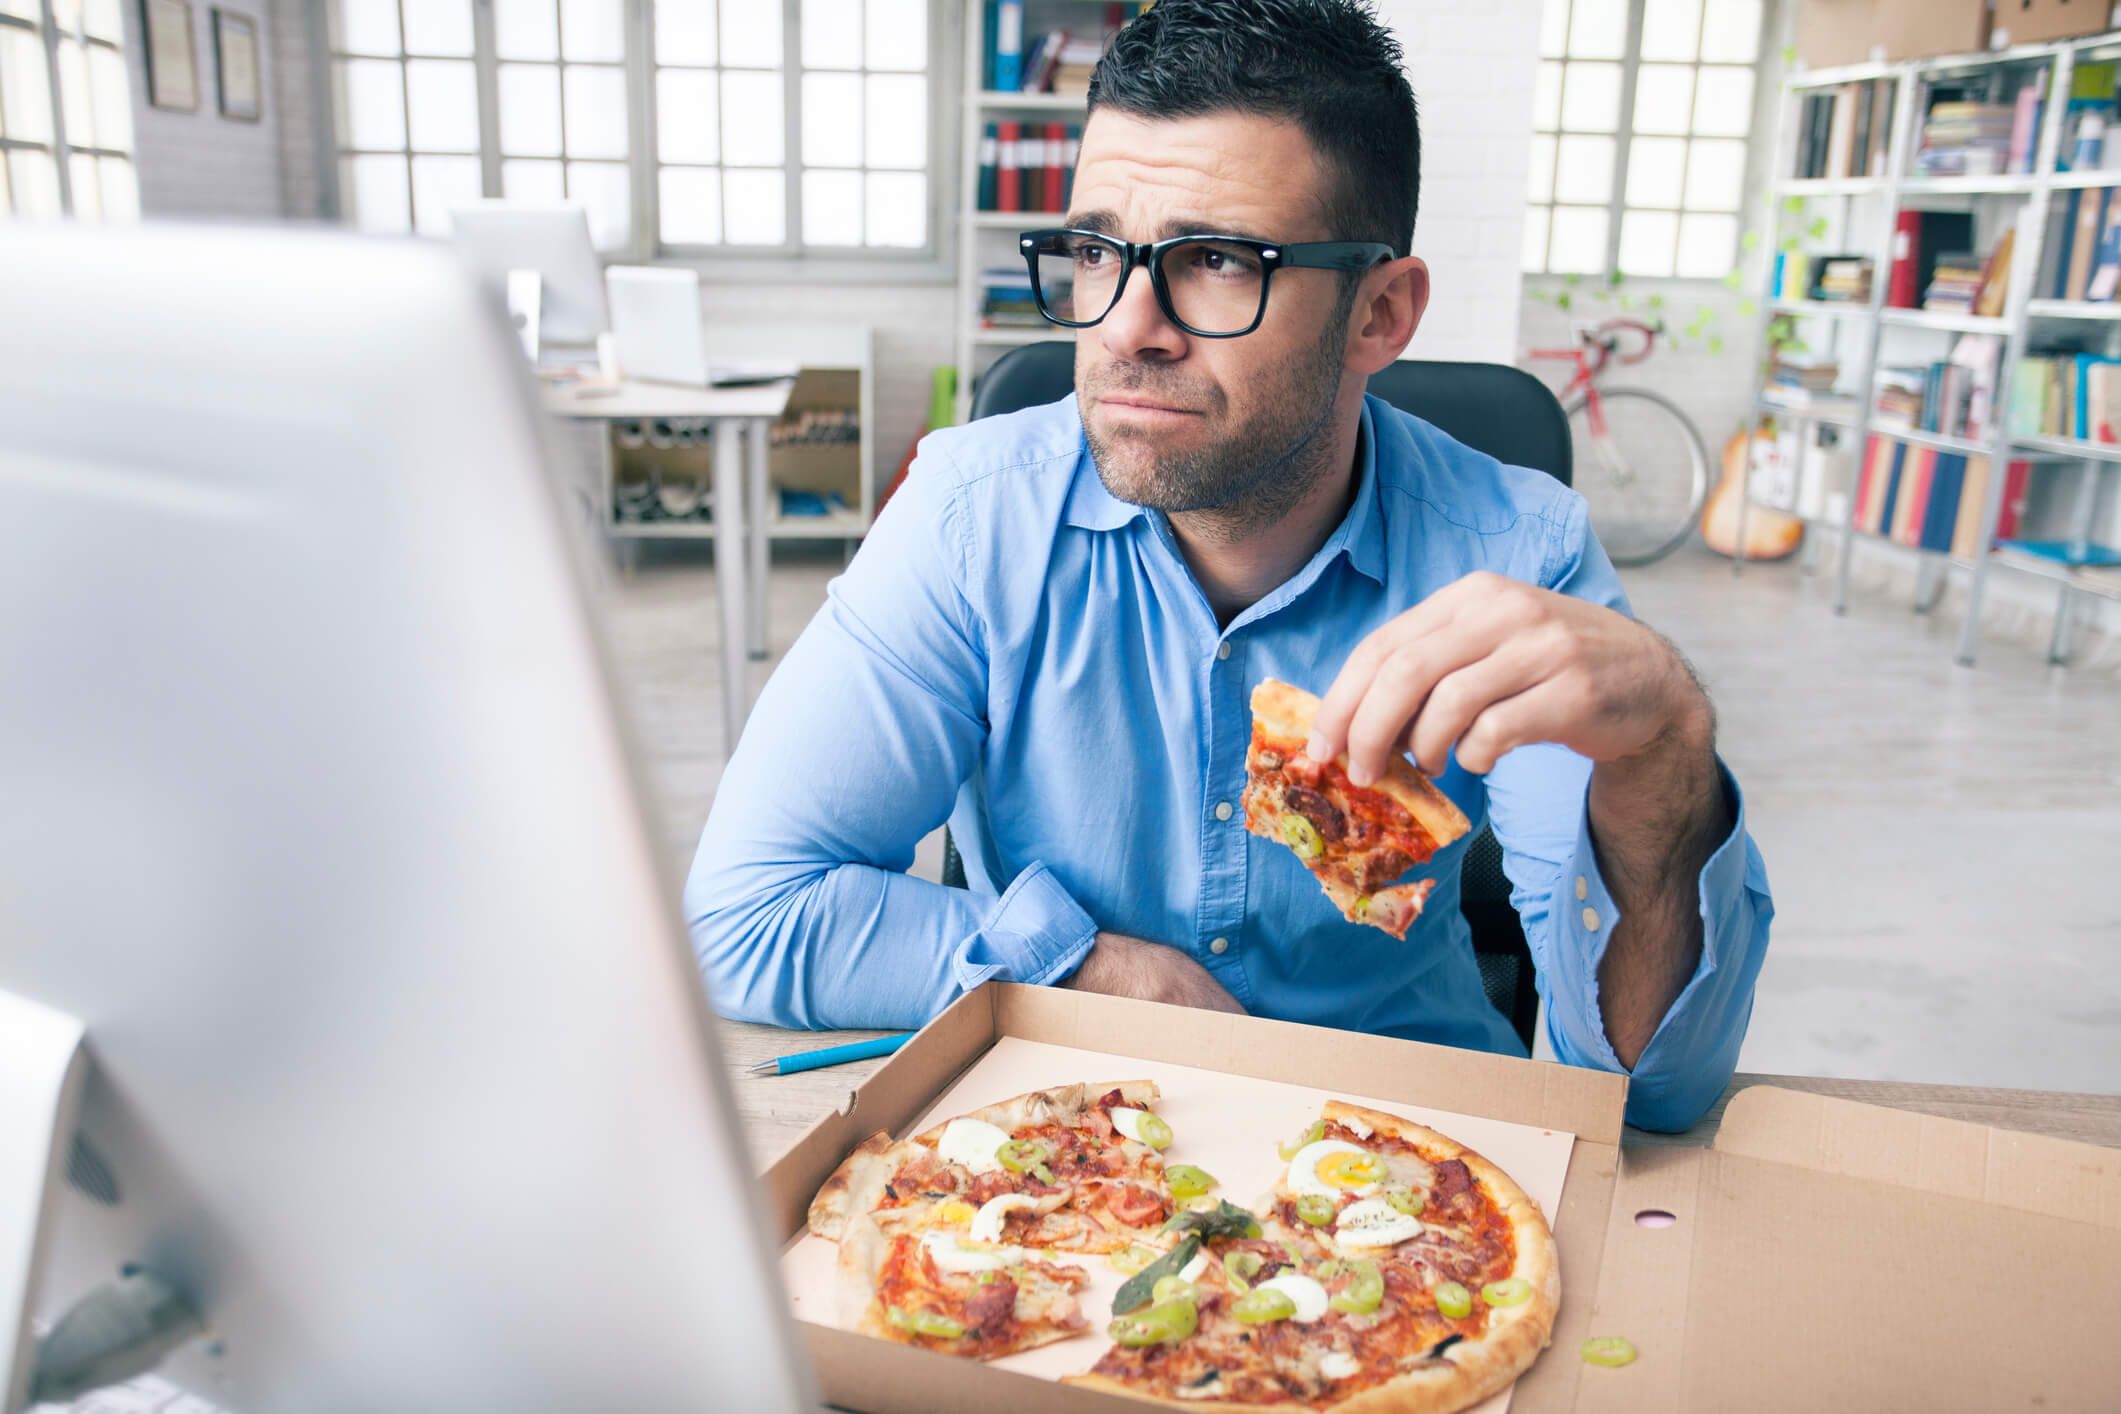 Can Comfort Food Help Reduce Stress